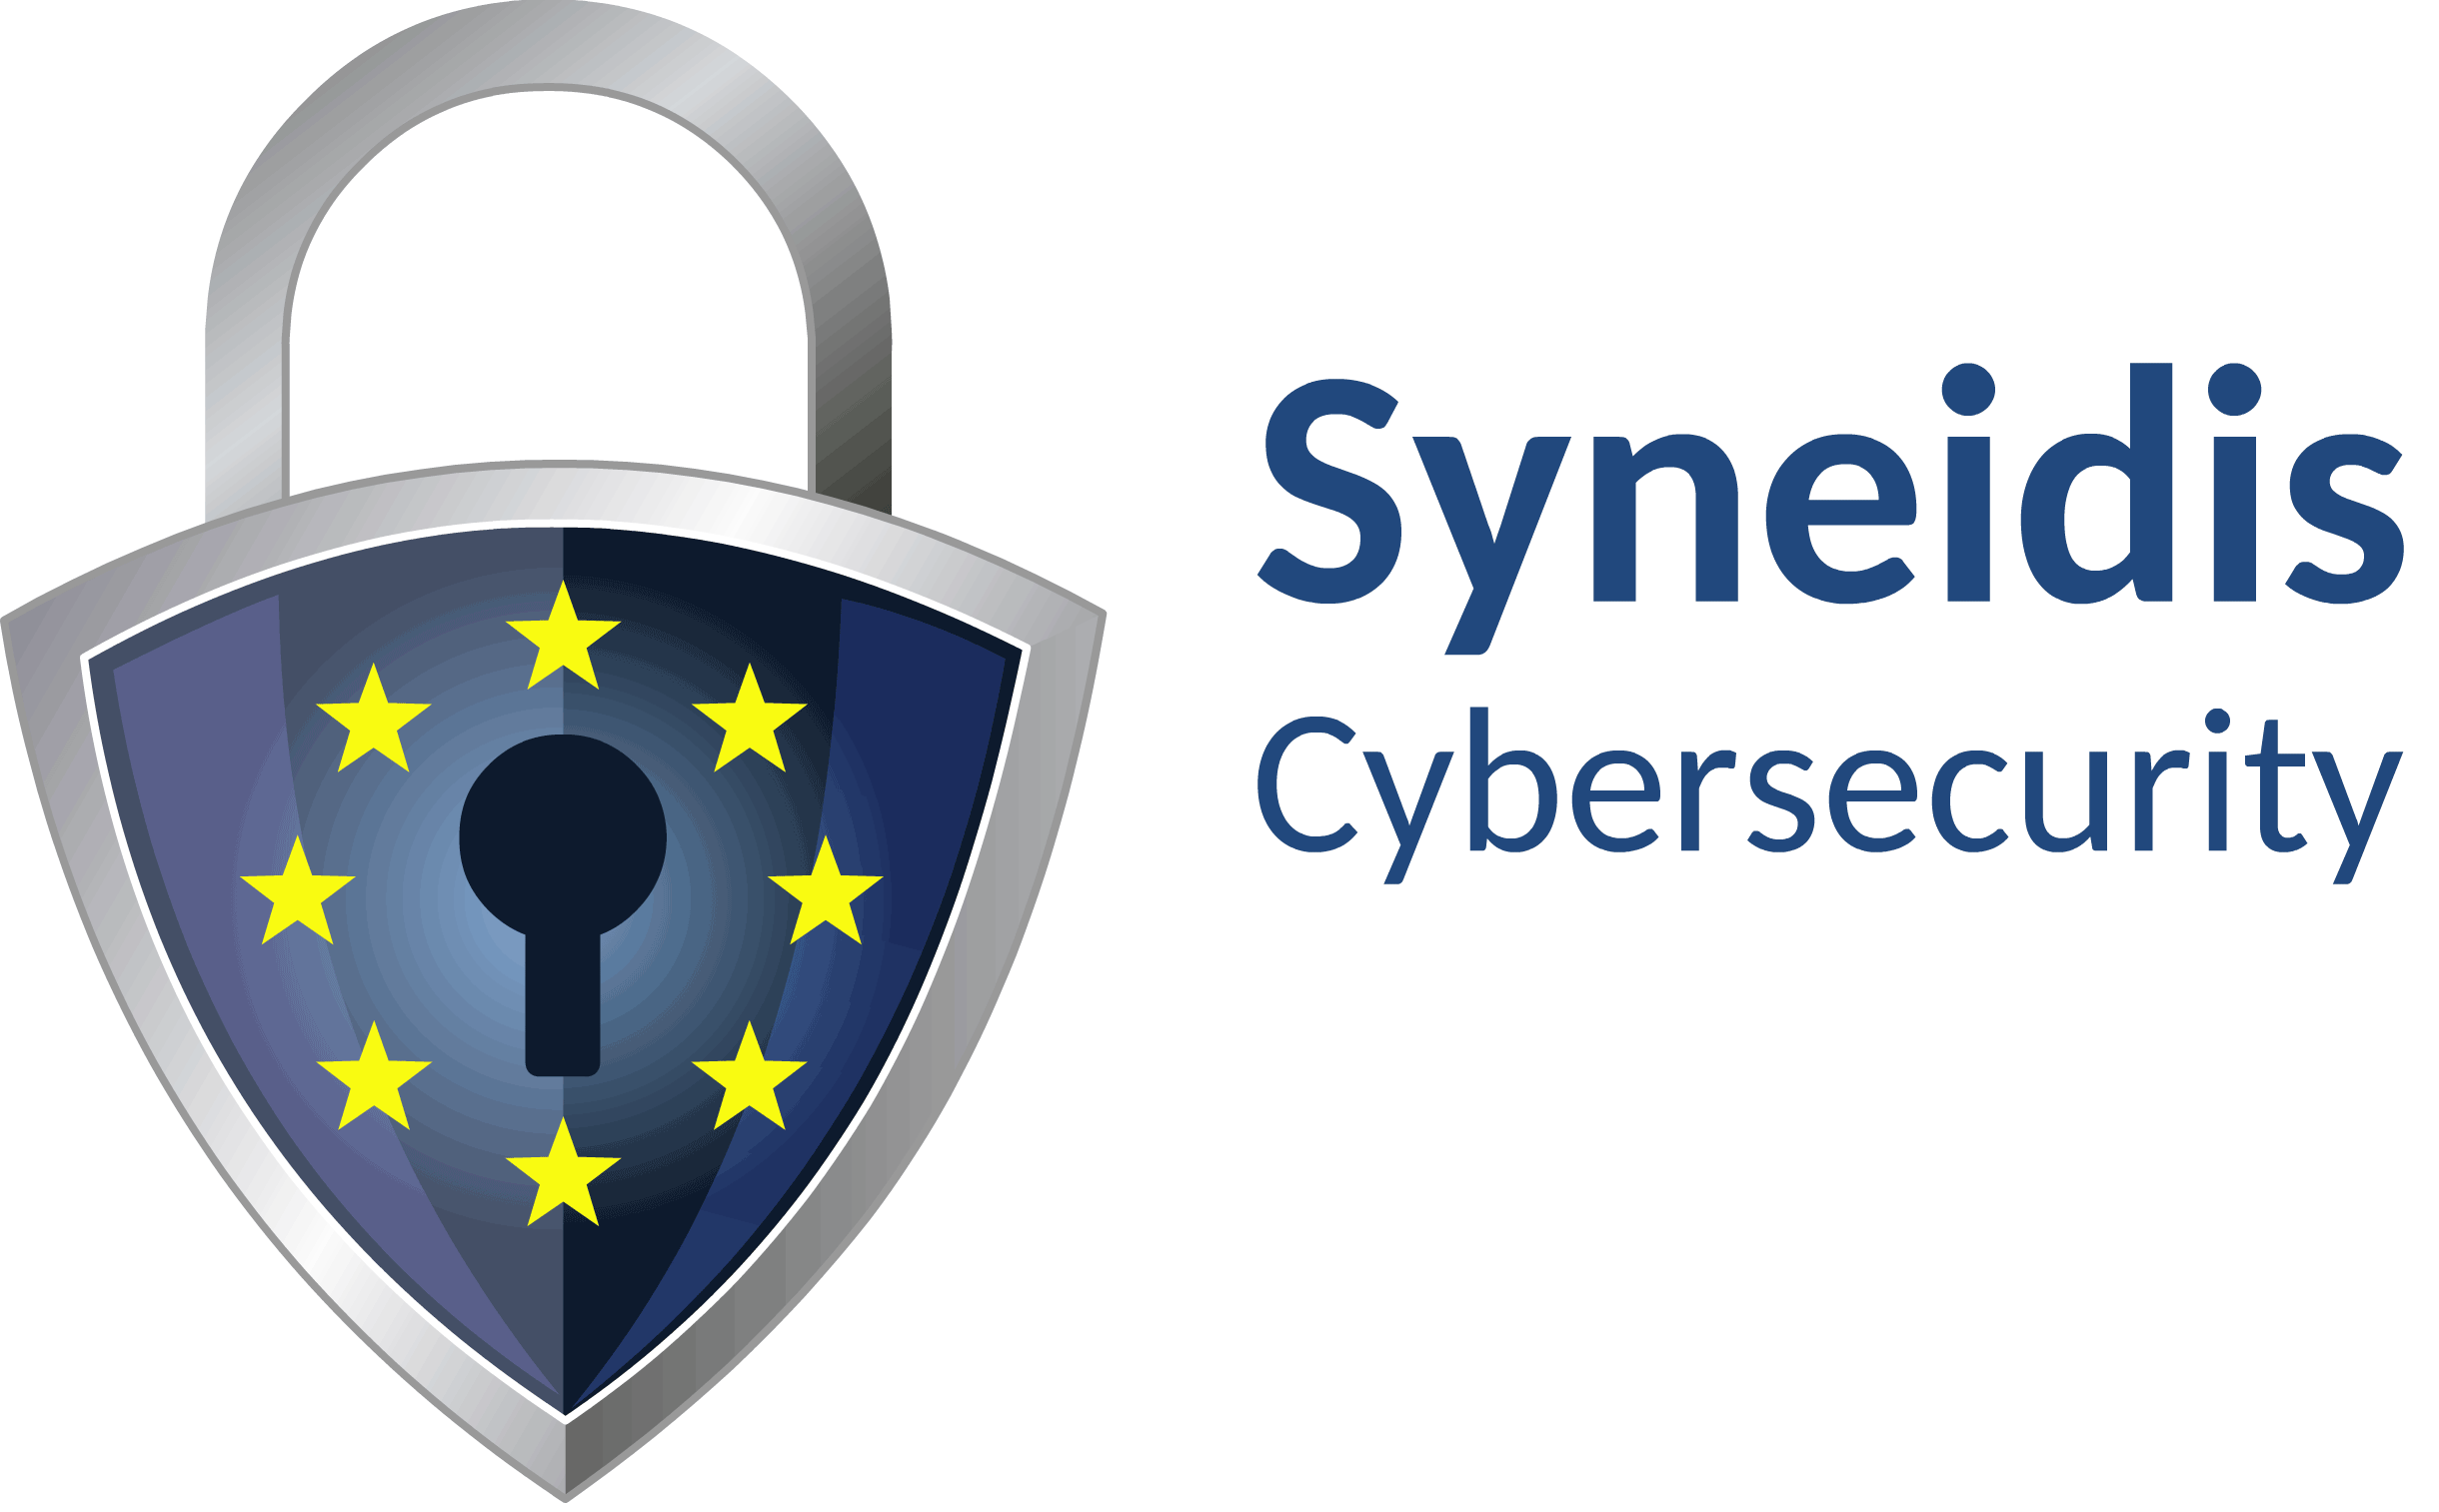 Syneidis' primary mission is to help European institutions and companies protect their privacy by protecting themselves from cyber attacks, wherever they come from, and specifically to help protect their confidential data both at rest and in-transit, by commercializing a growing suite of cybersecurity products that are easy-to-use, solving the proverbial conundrum between security and usability.